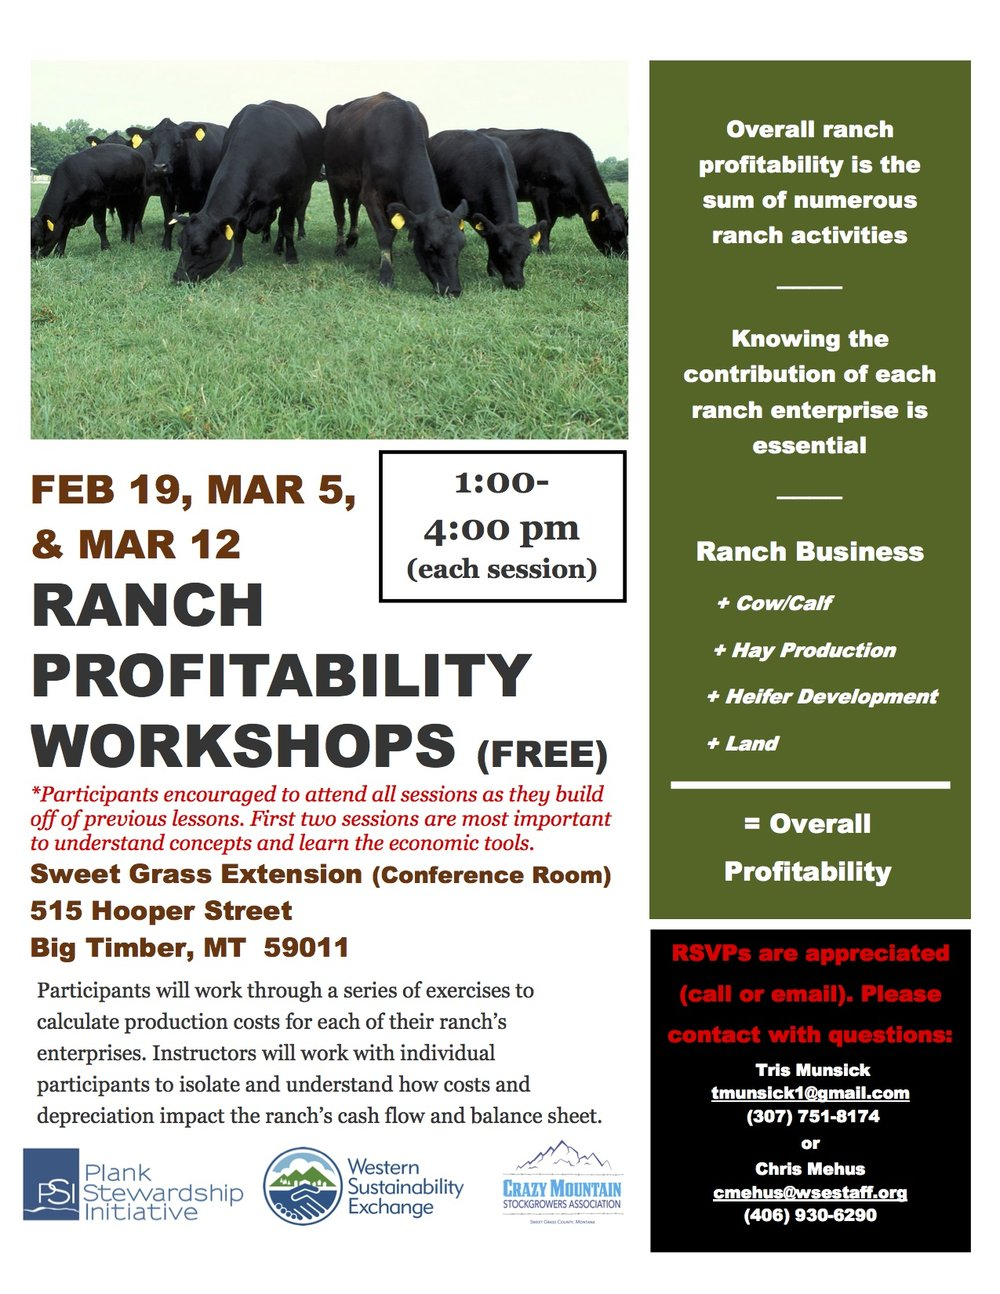 PLANK - Ranch Profitability Workshop Flyer.jpg